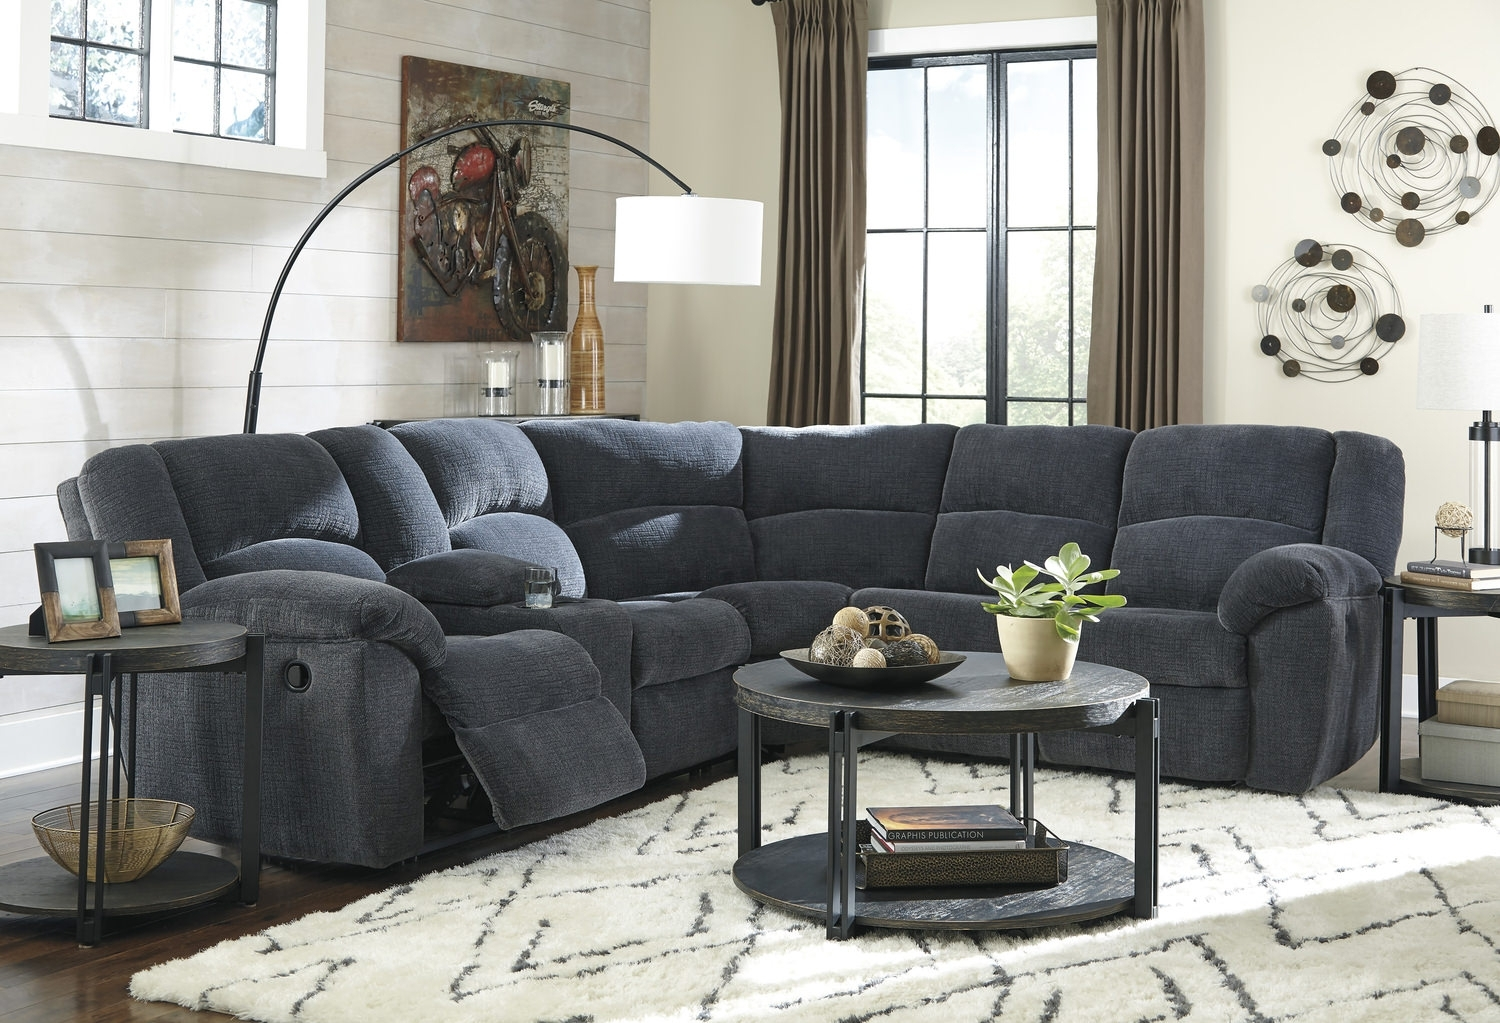 Texas 2 Piece Reclining Sectional | Hom Furniture With Regard To St Cloud Mn Sectional Sofas (View 7 of 10)